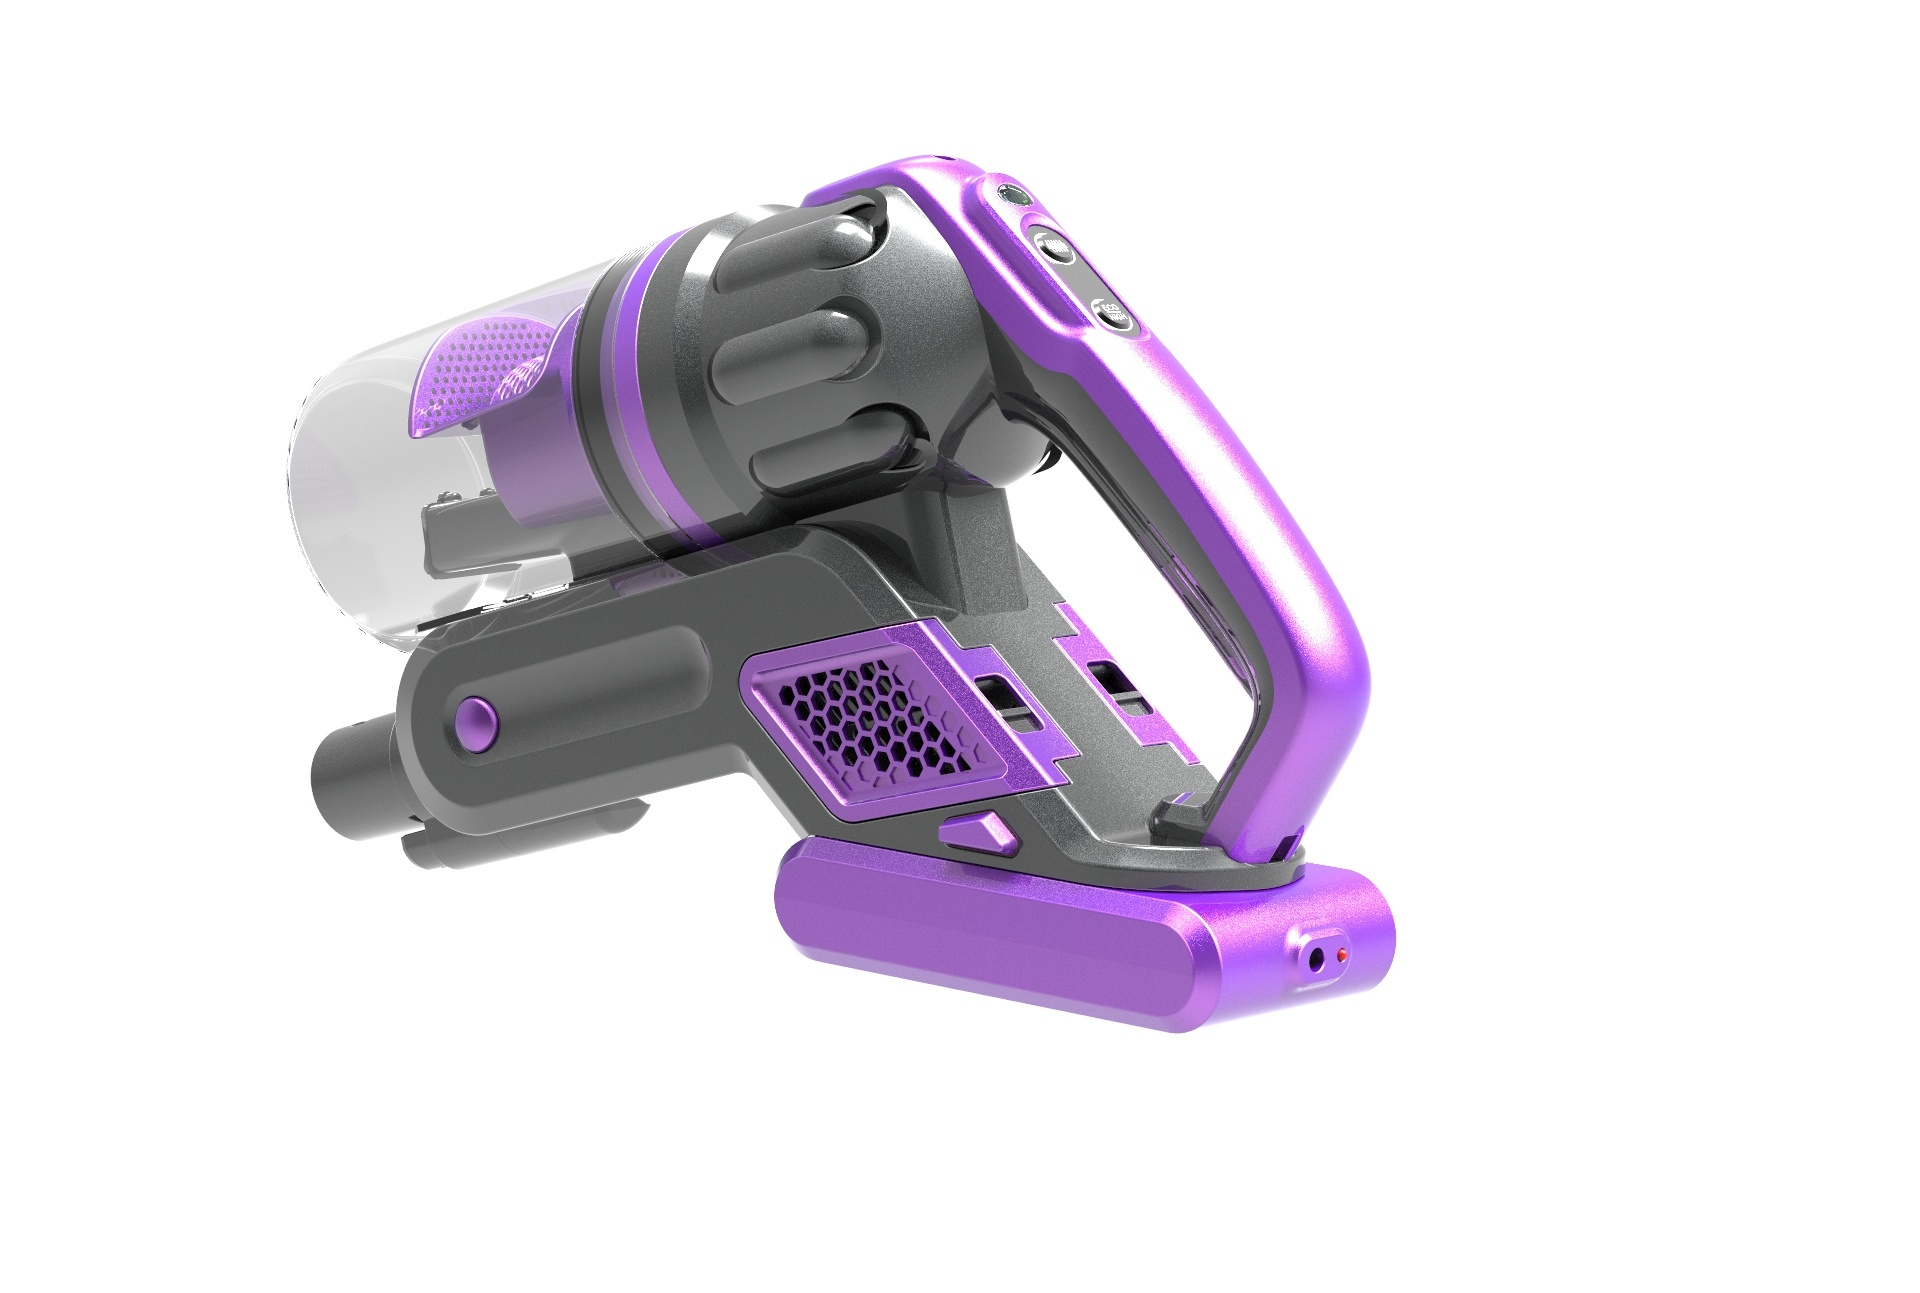 Newest-Cordless-Vacuum-Cleaner-for-Home-Clean (1)